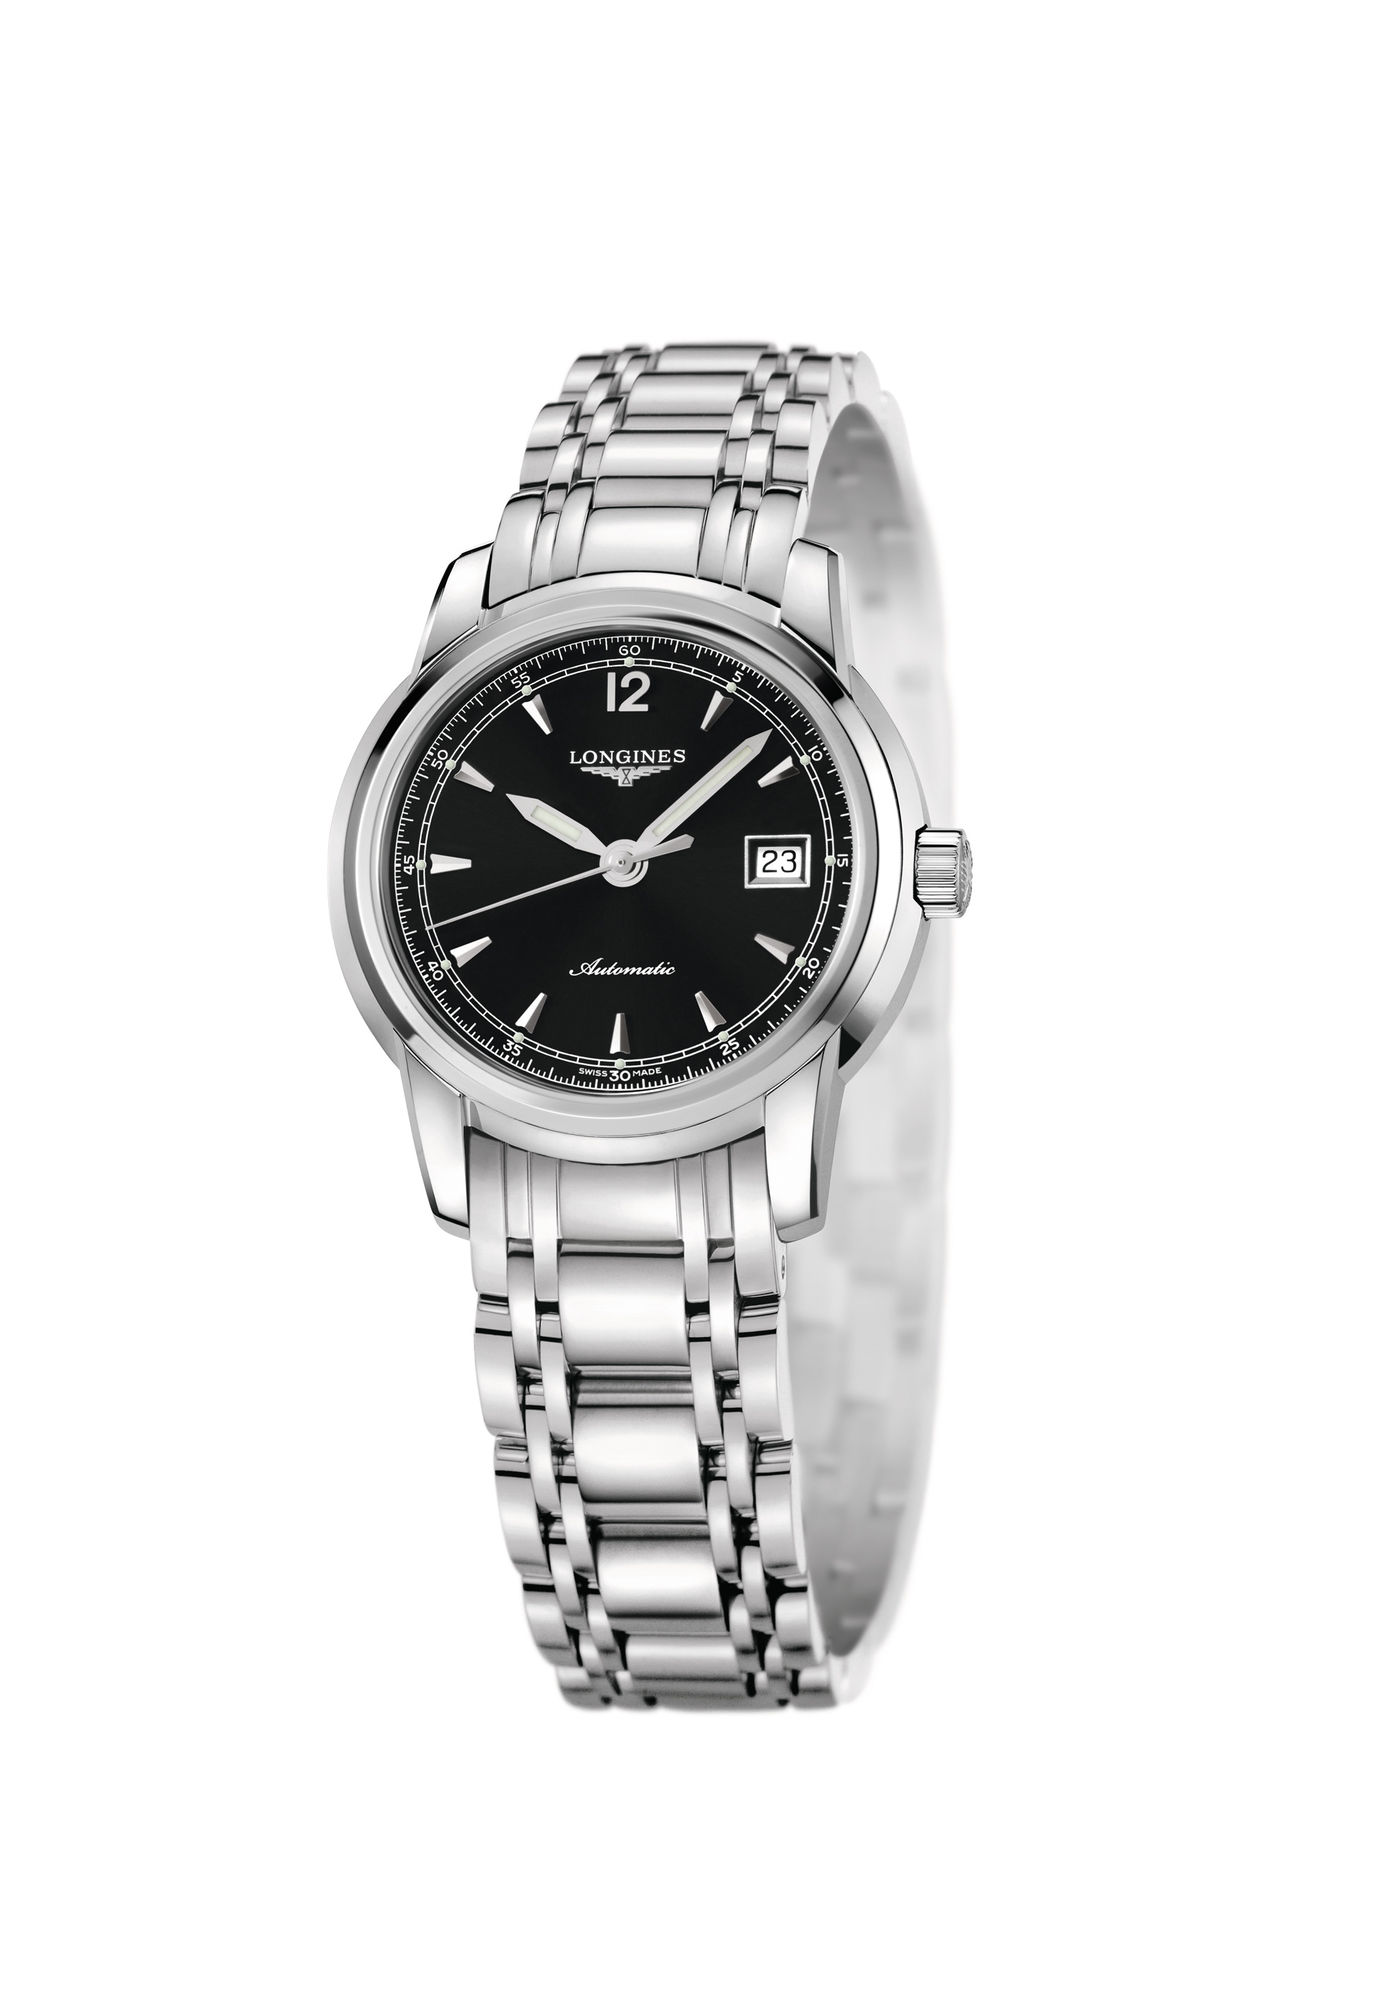 Longines The Longines Saint-Imier Collection Watch 4